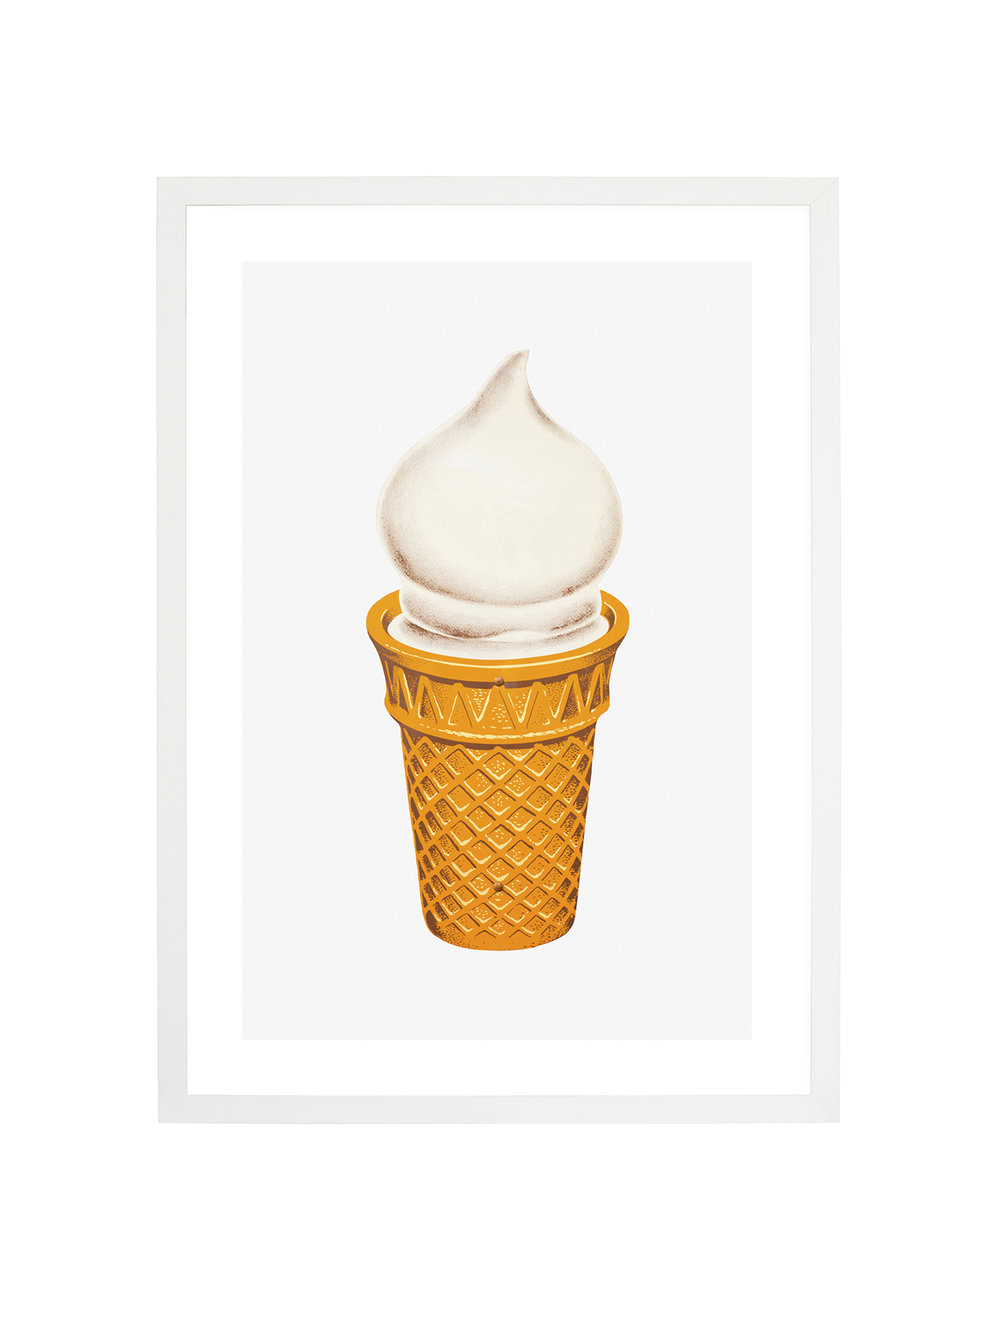 JP GREENWOOD_ICE CREAM_WHITE FRAME.jpg